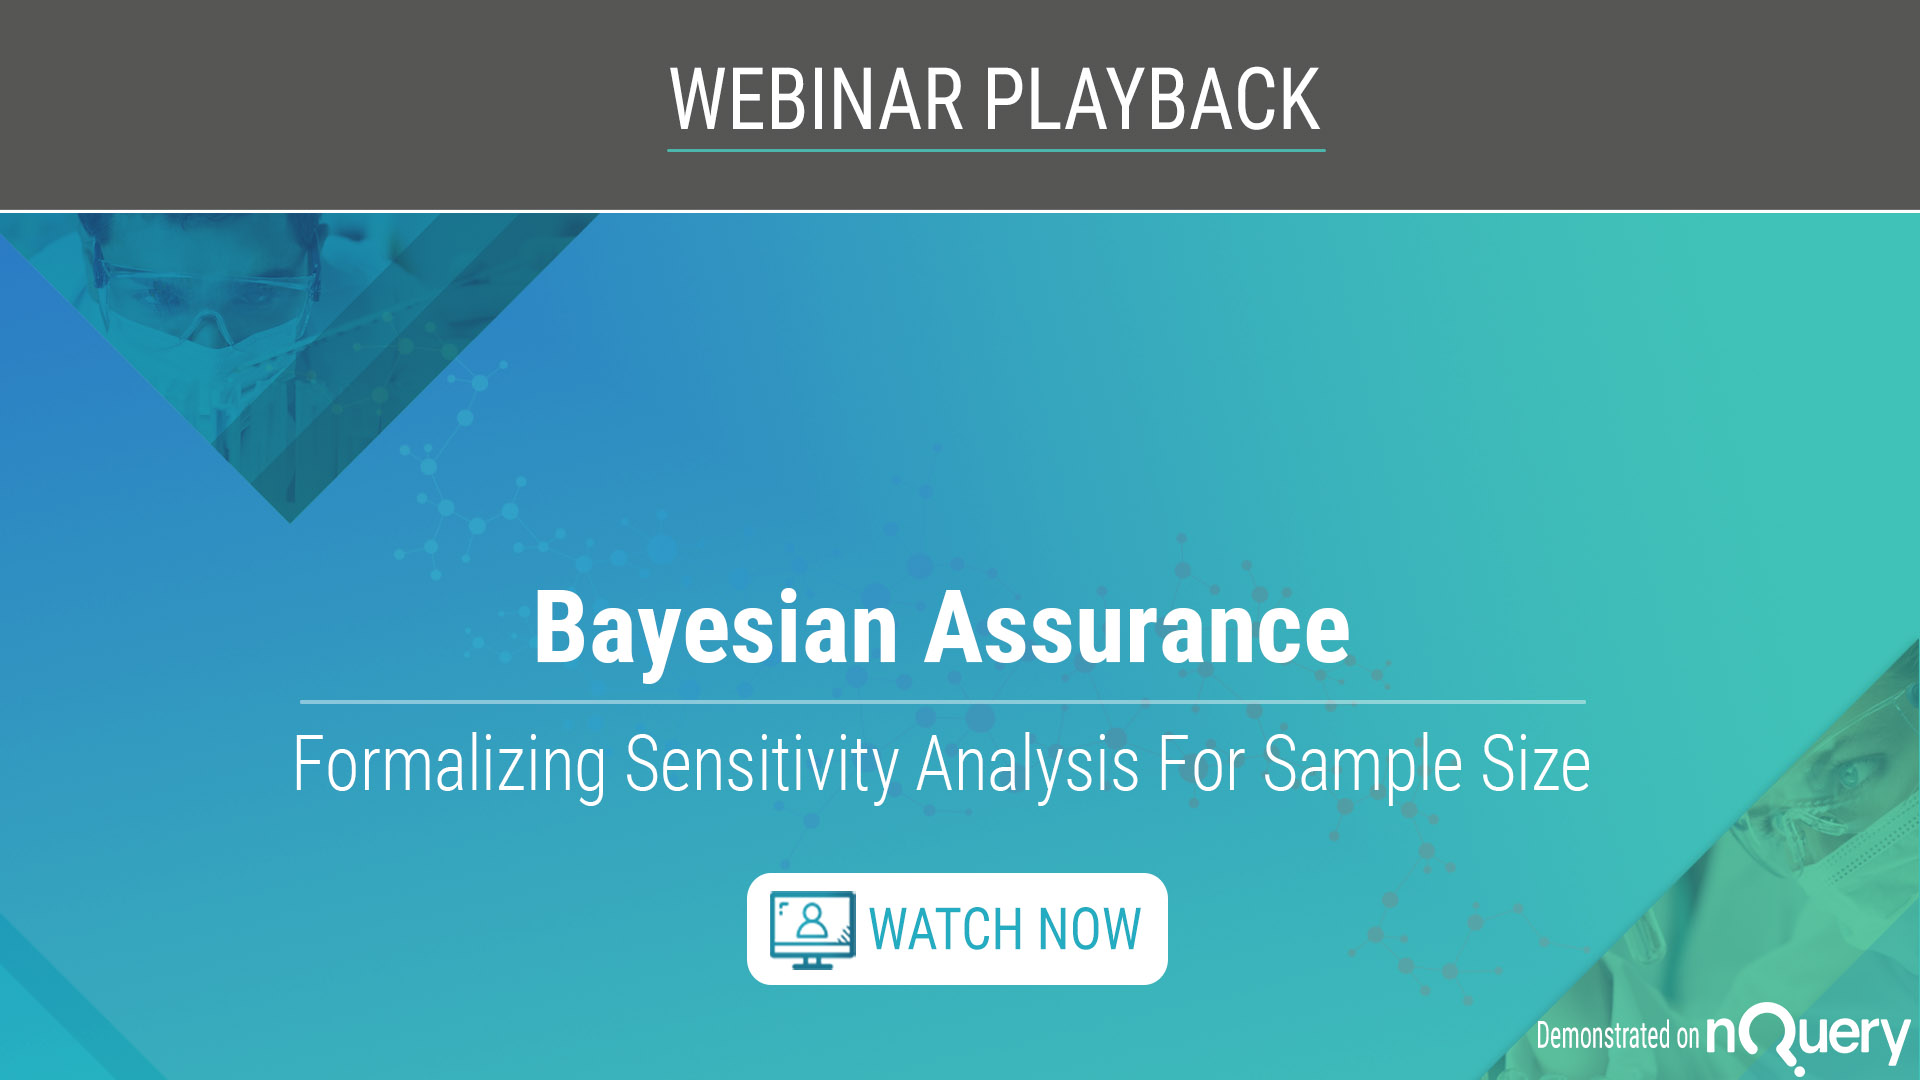 bayesian-assurance-formalizing-sensitivity-analysis-for-sample-size-on-demand-1920-1080